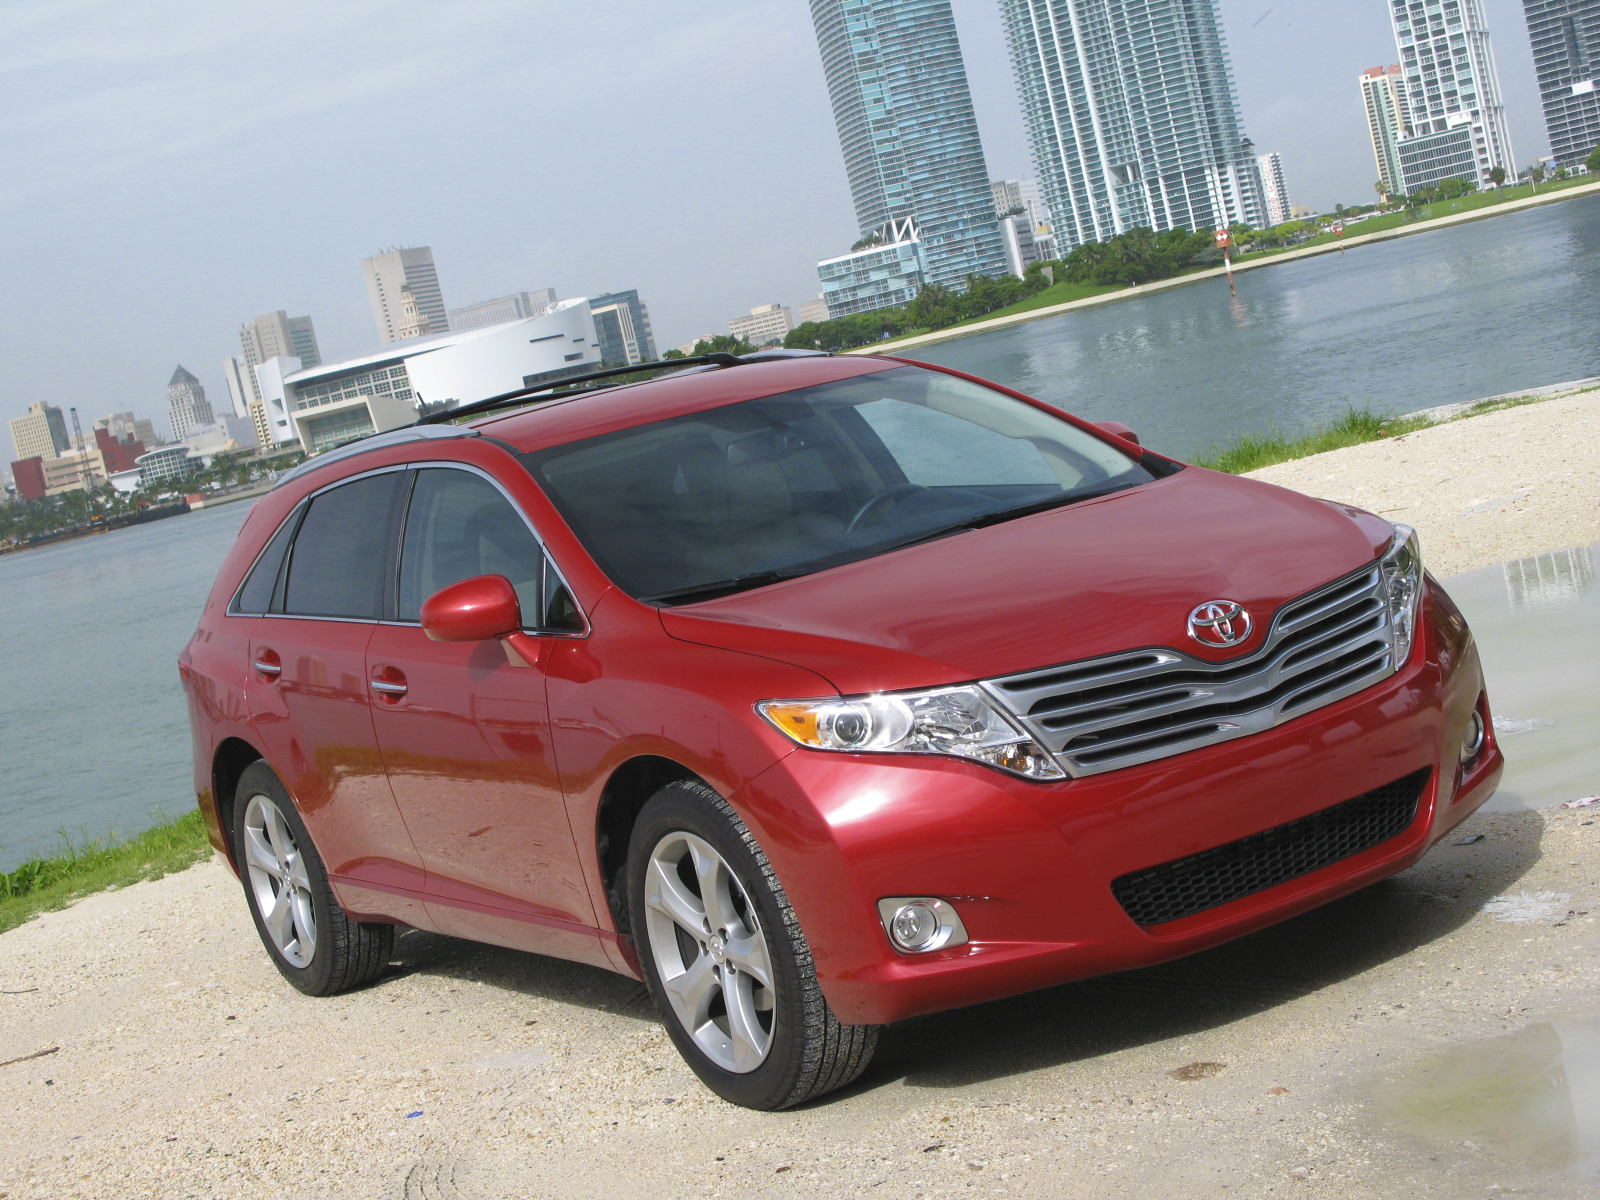 Toyota Venza News And Reviews